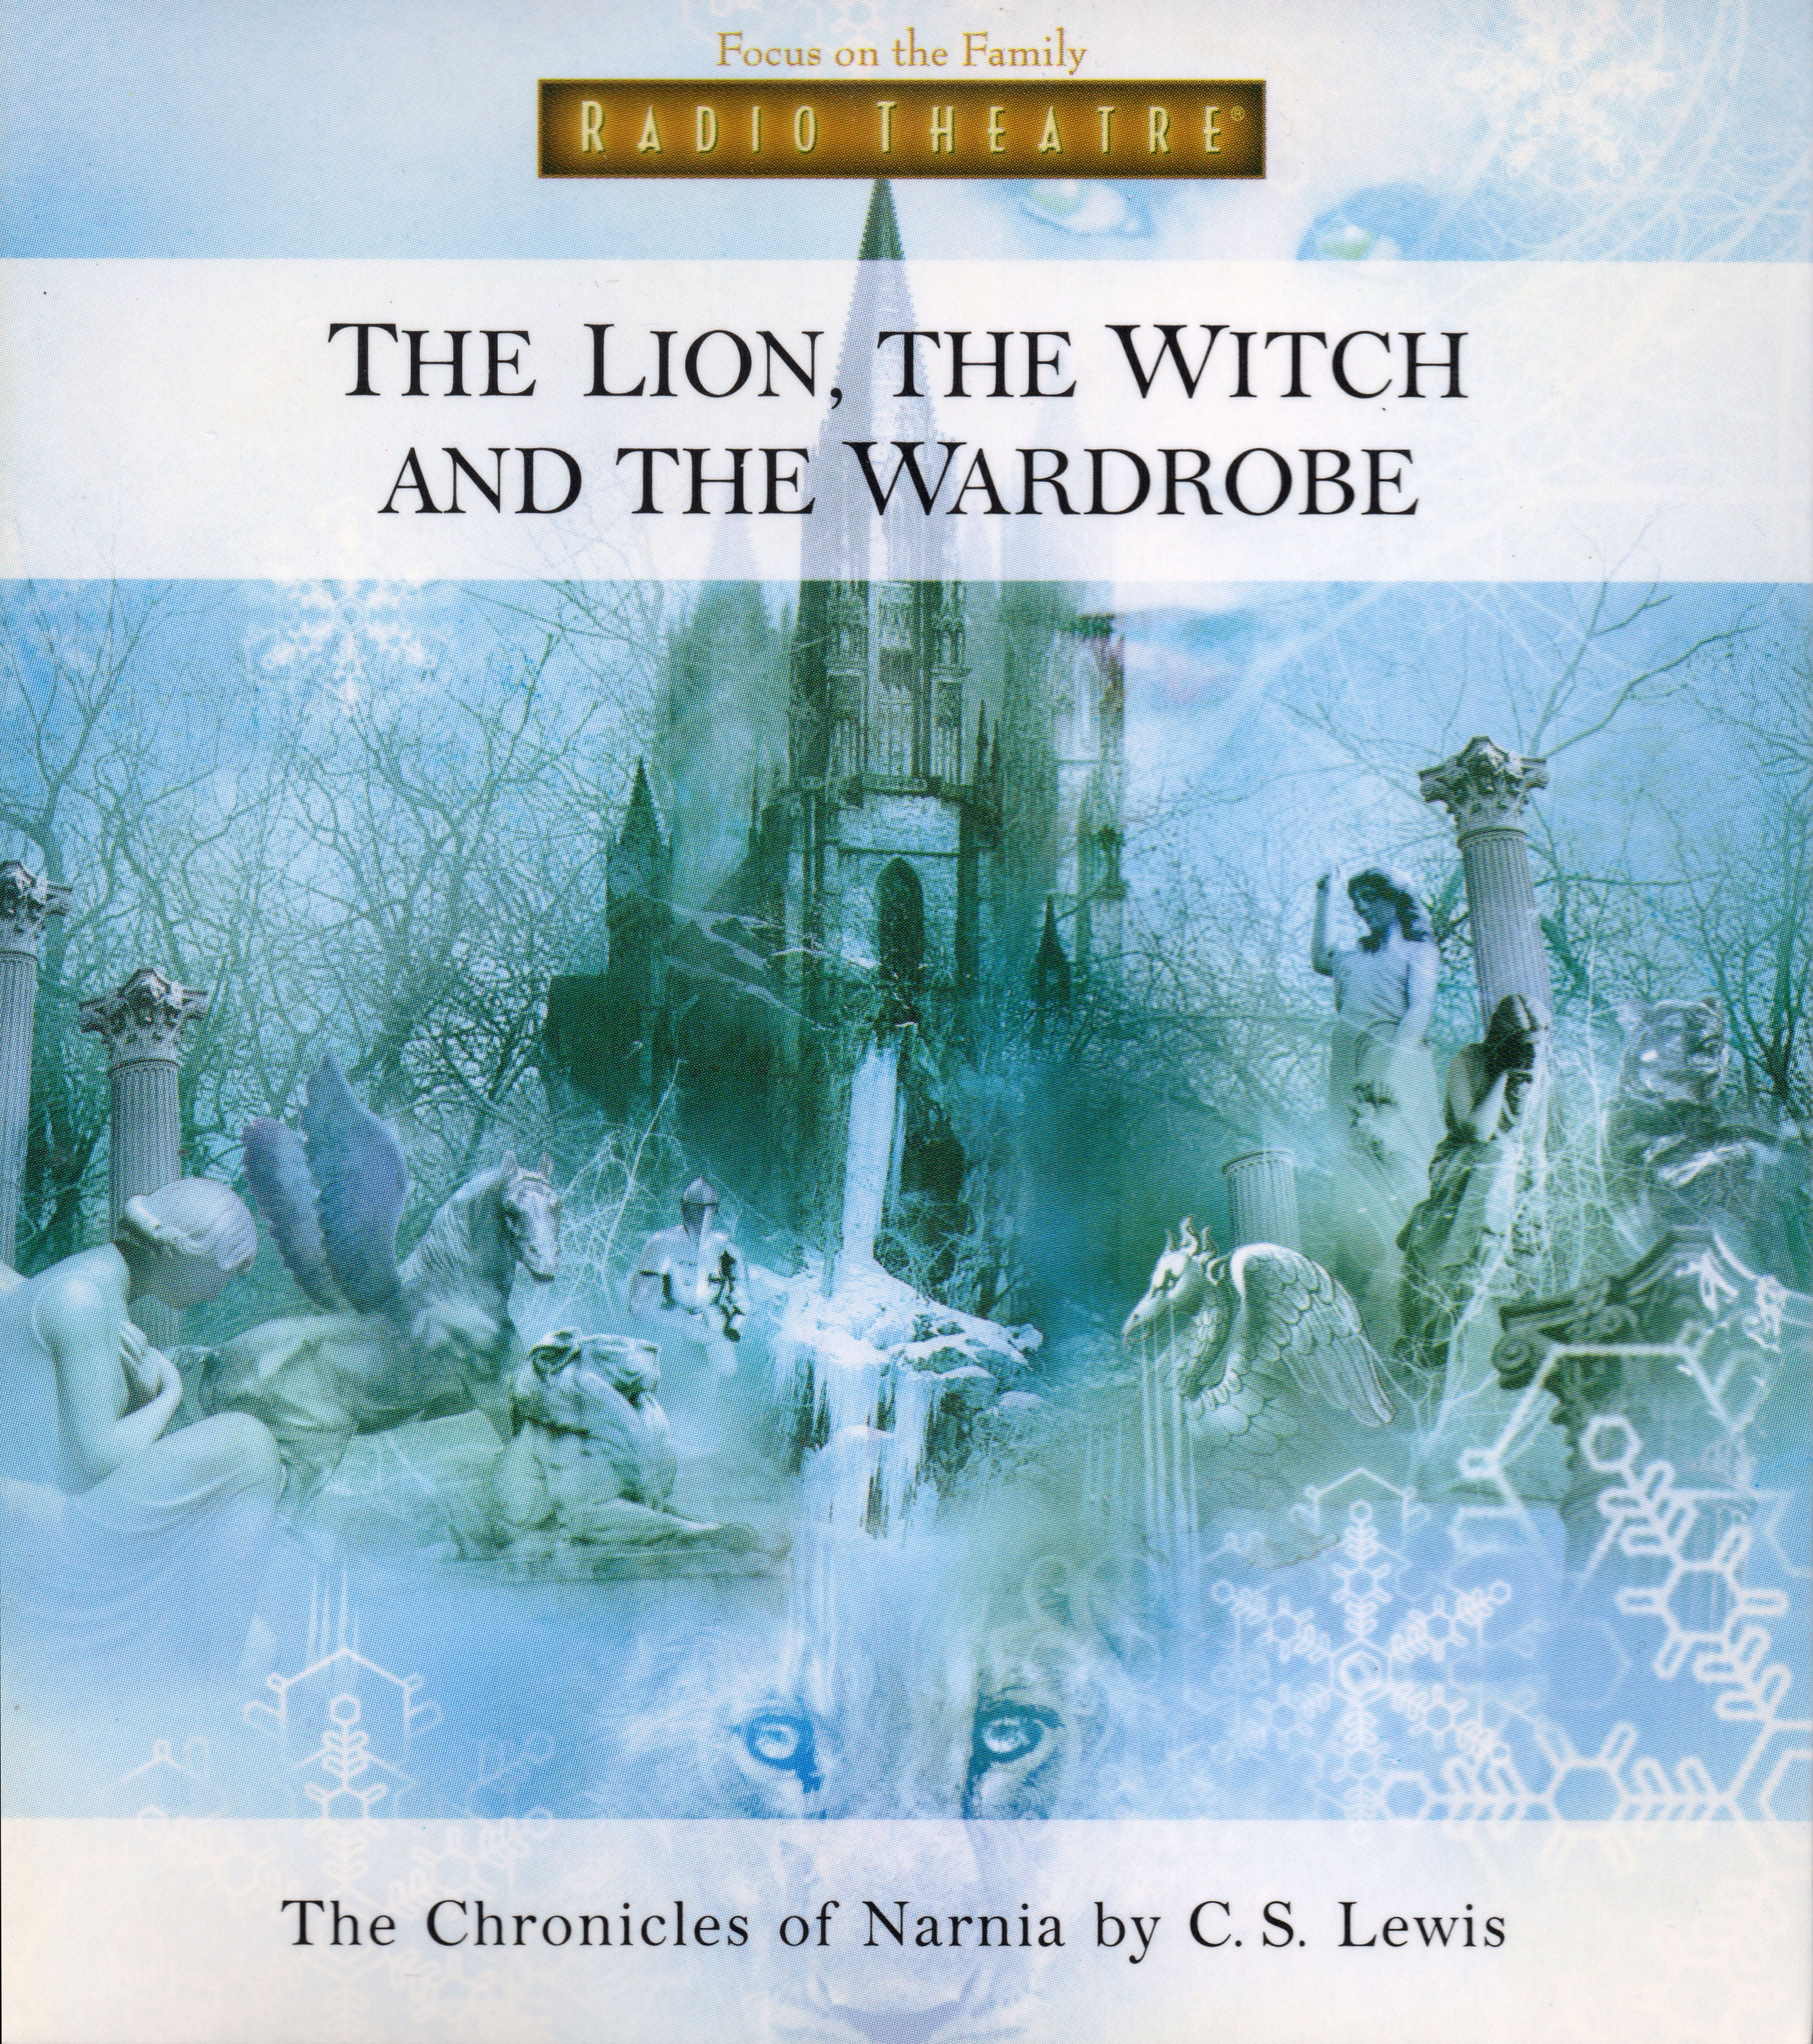 the lion, the witch, and the wardrobe (radio theatre production